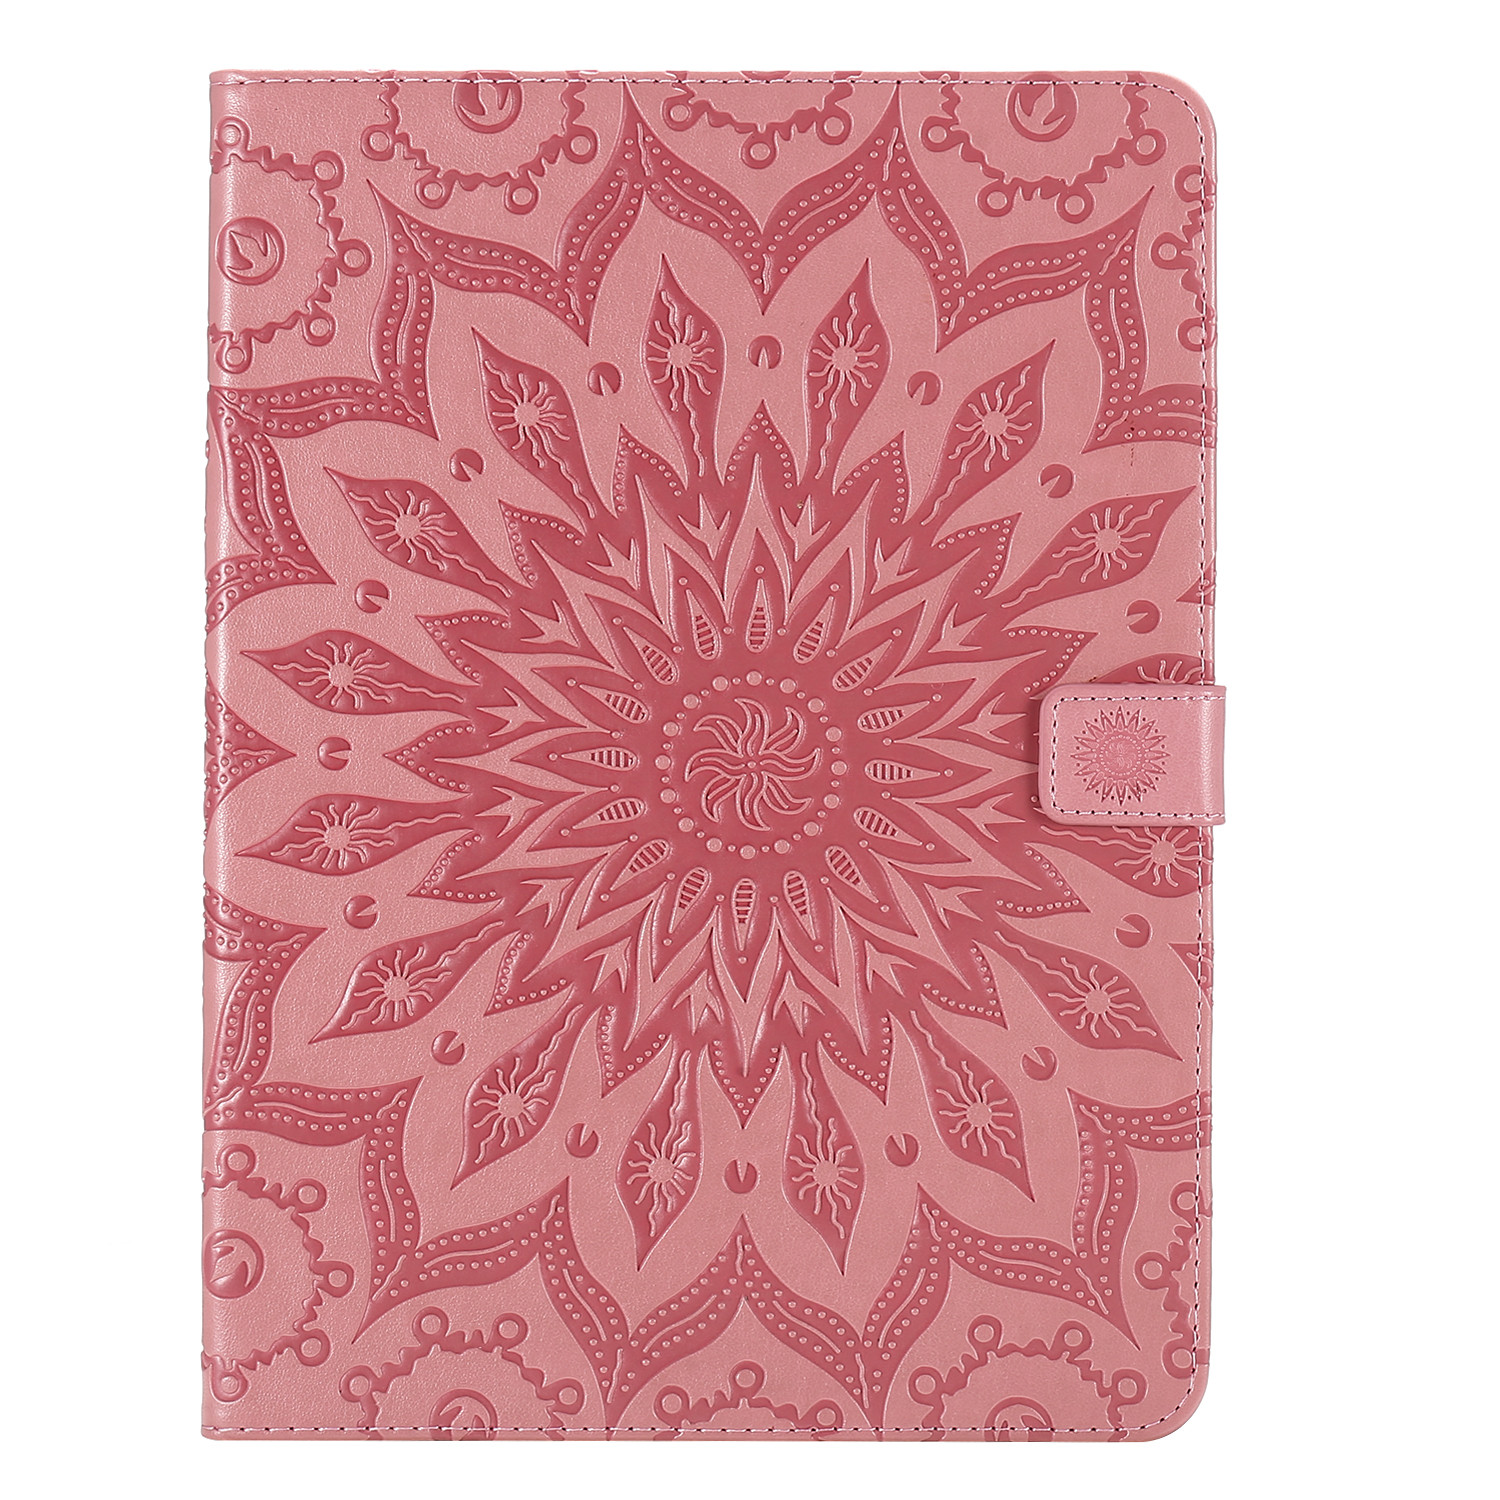 1 White Flower 3D Embossed Cover for iPad Pro 12 9 Case 2020 Leather Protective Shell Skin for